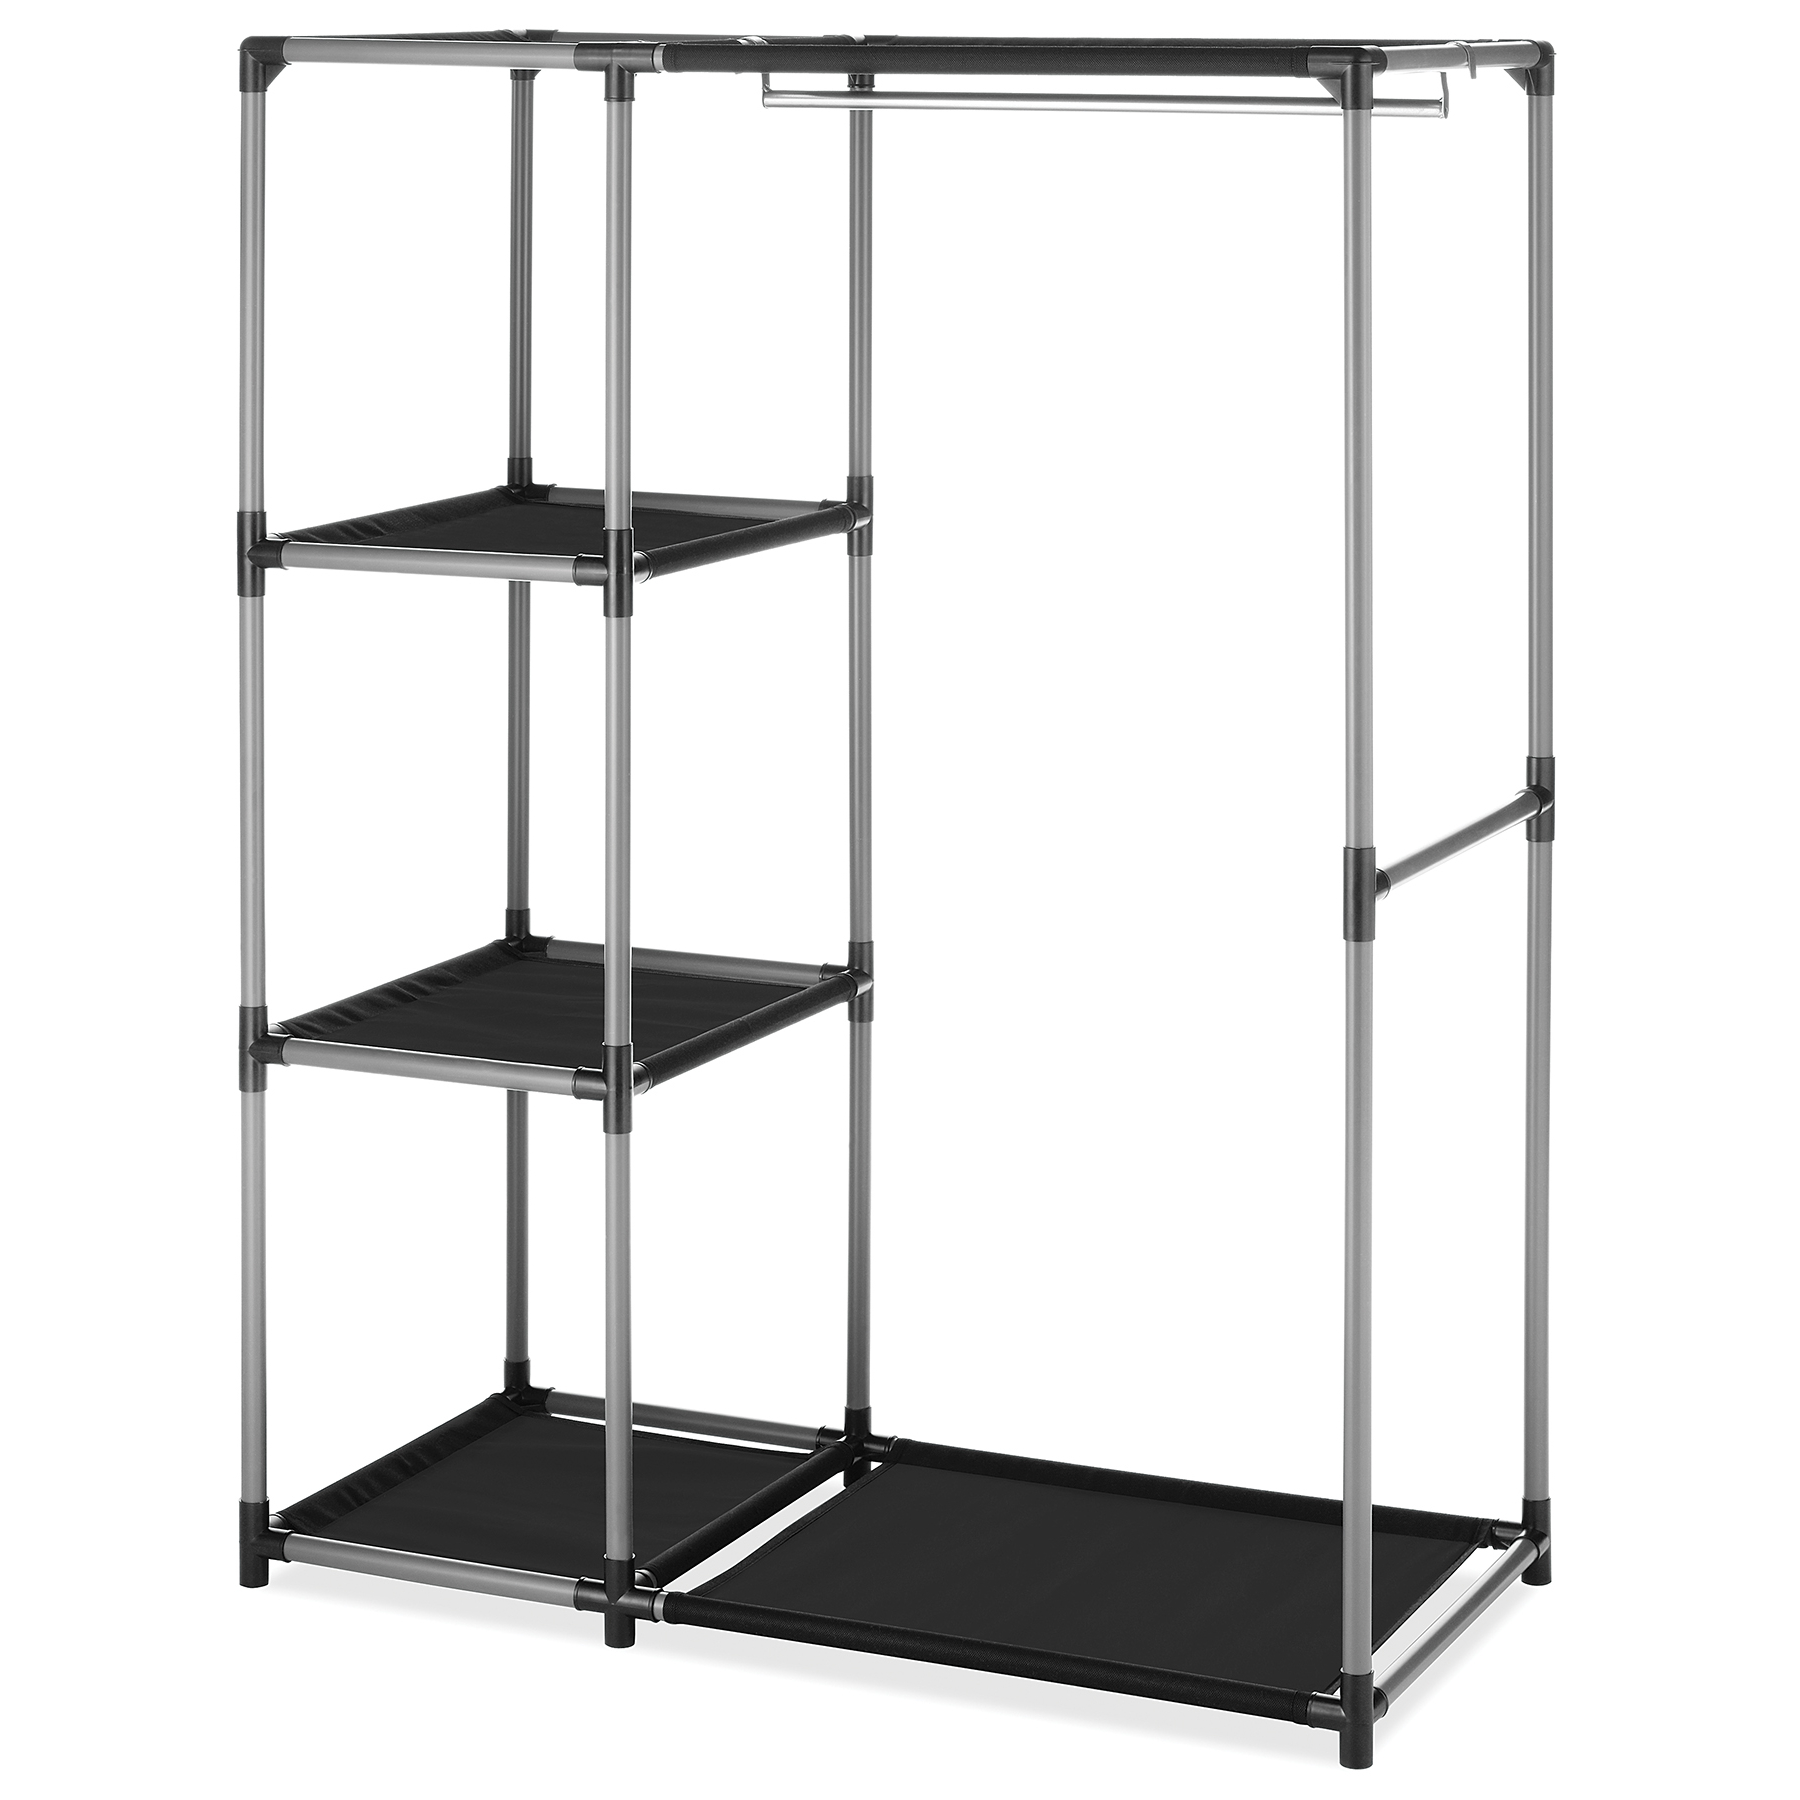 Whitmor Spacemaker Garment Rack & Shelves Chrome & Black